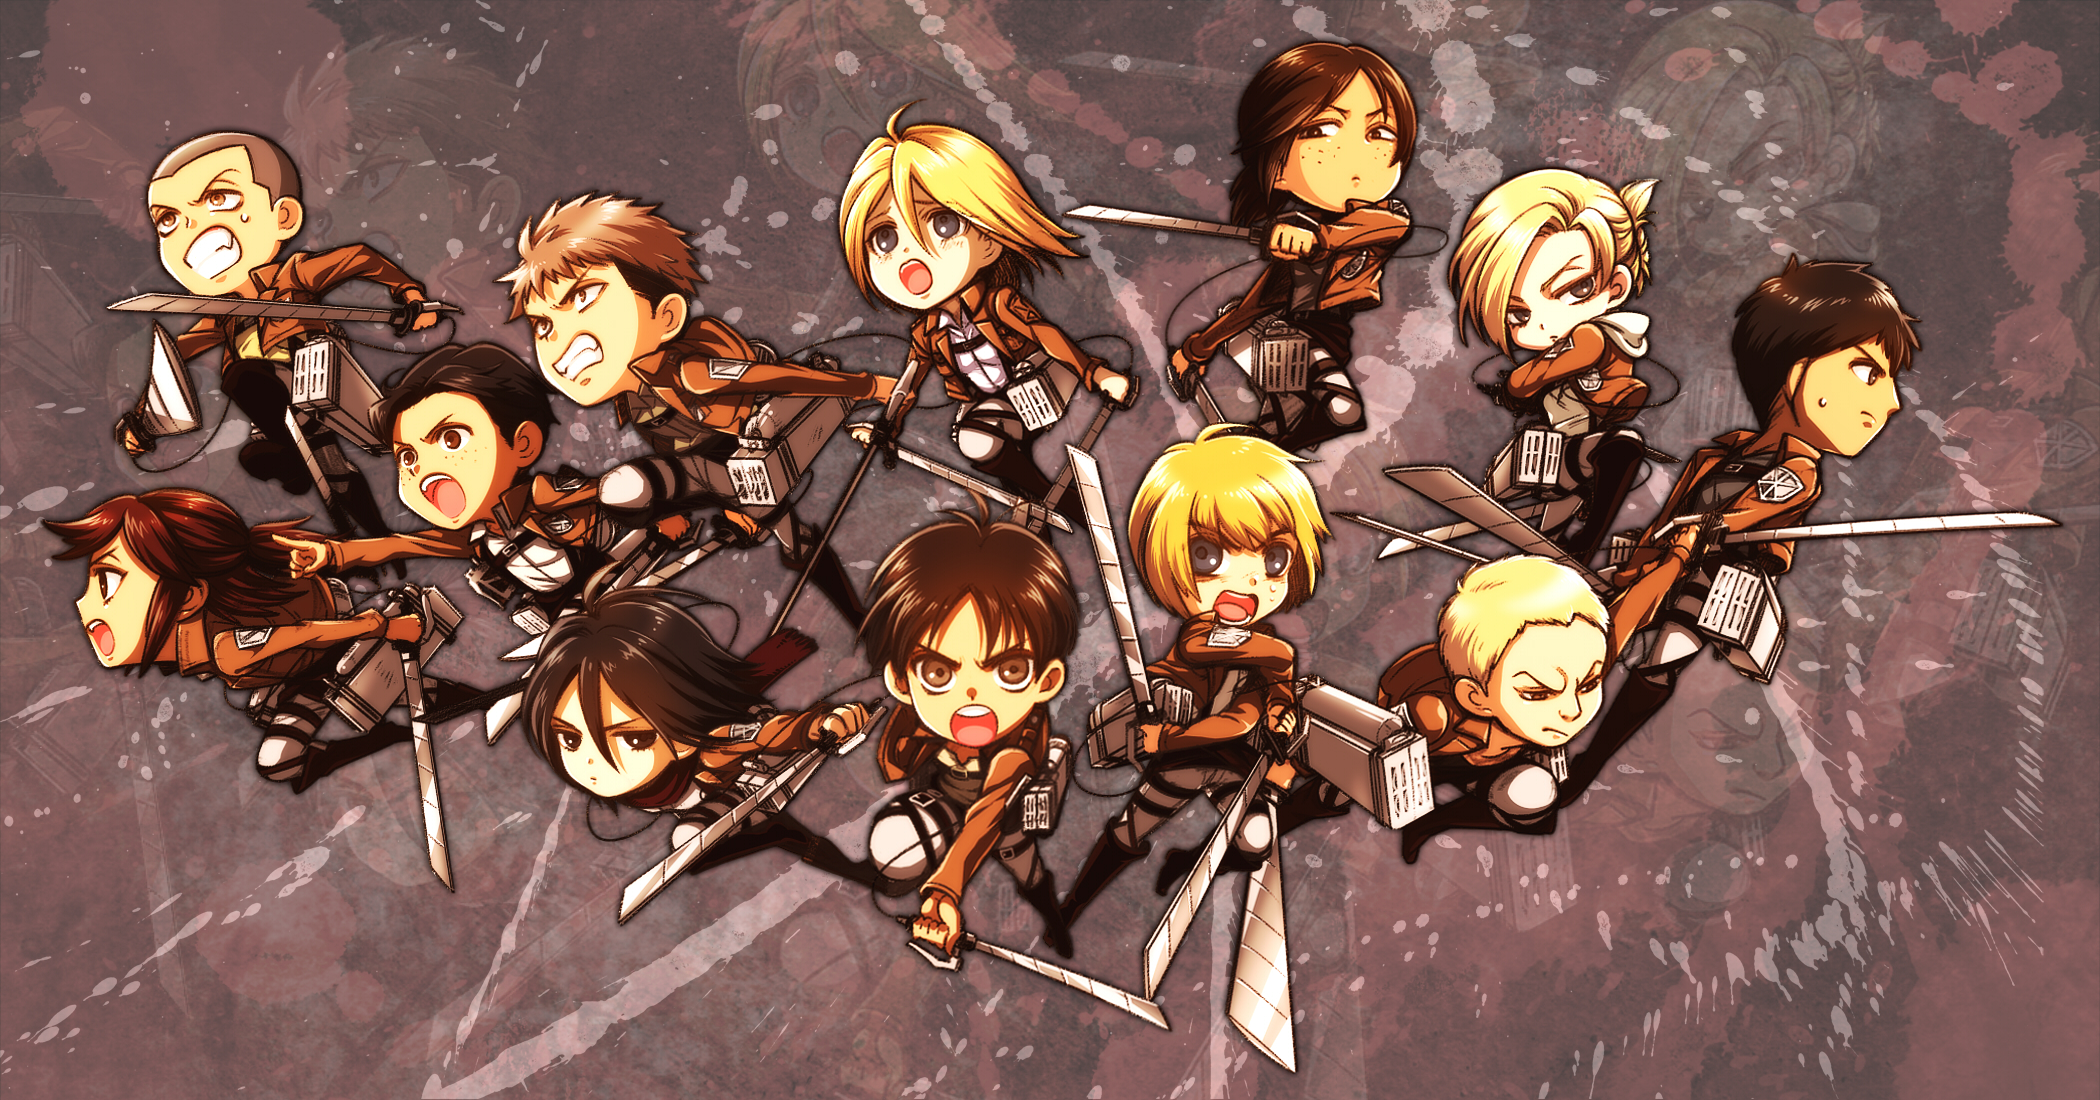 Annie leonhardt wallpaper zerochan anime image board attack on titan download attack on titan image voltagebd Image collections